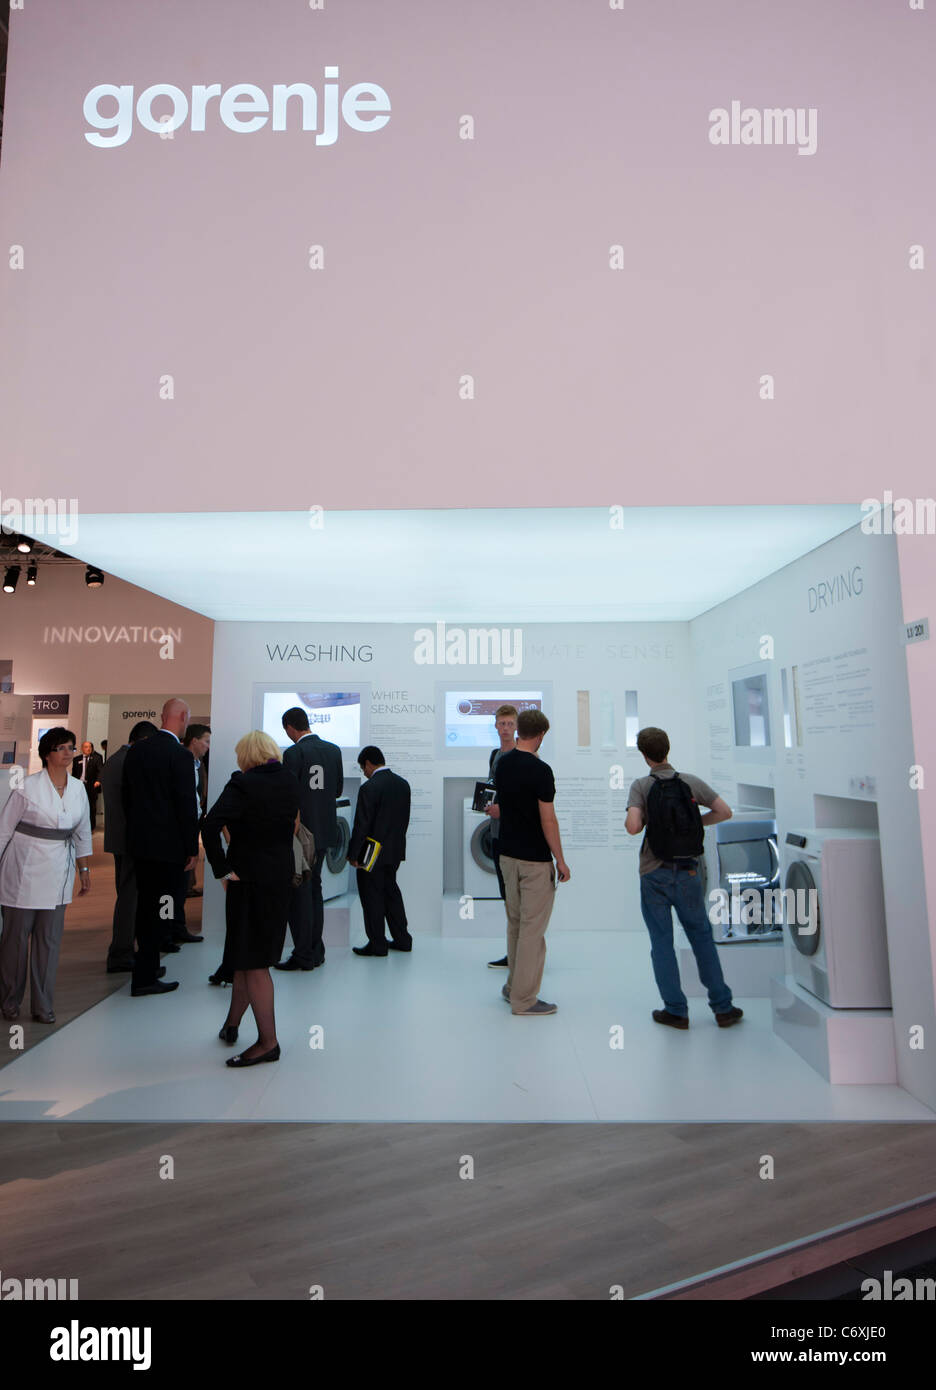 Gorenje consumer goods manufacturer stand at IFA consumer electronics trade fair in Berlin Germany 2011 - Stock Image